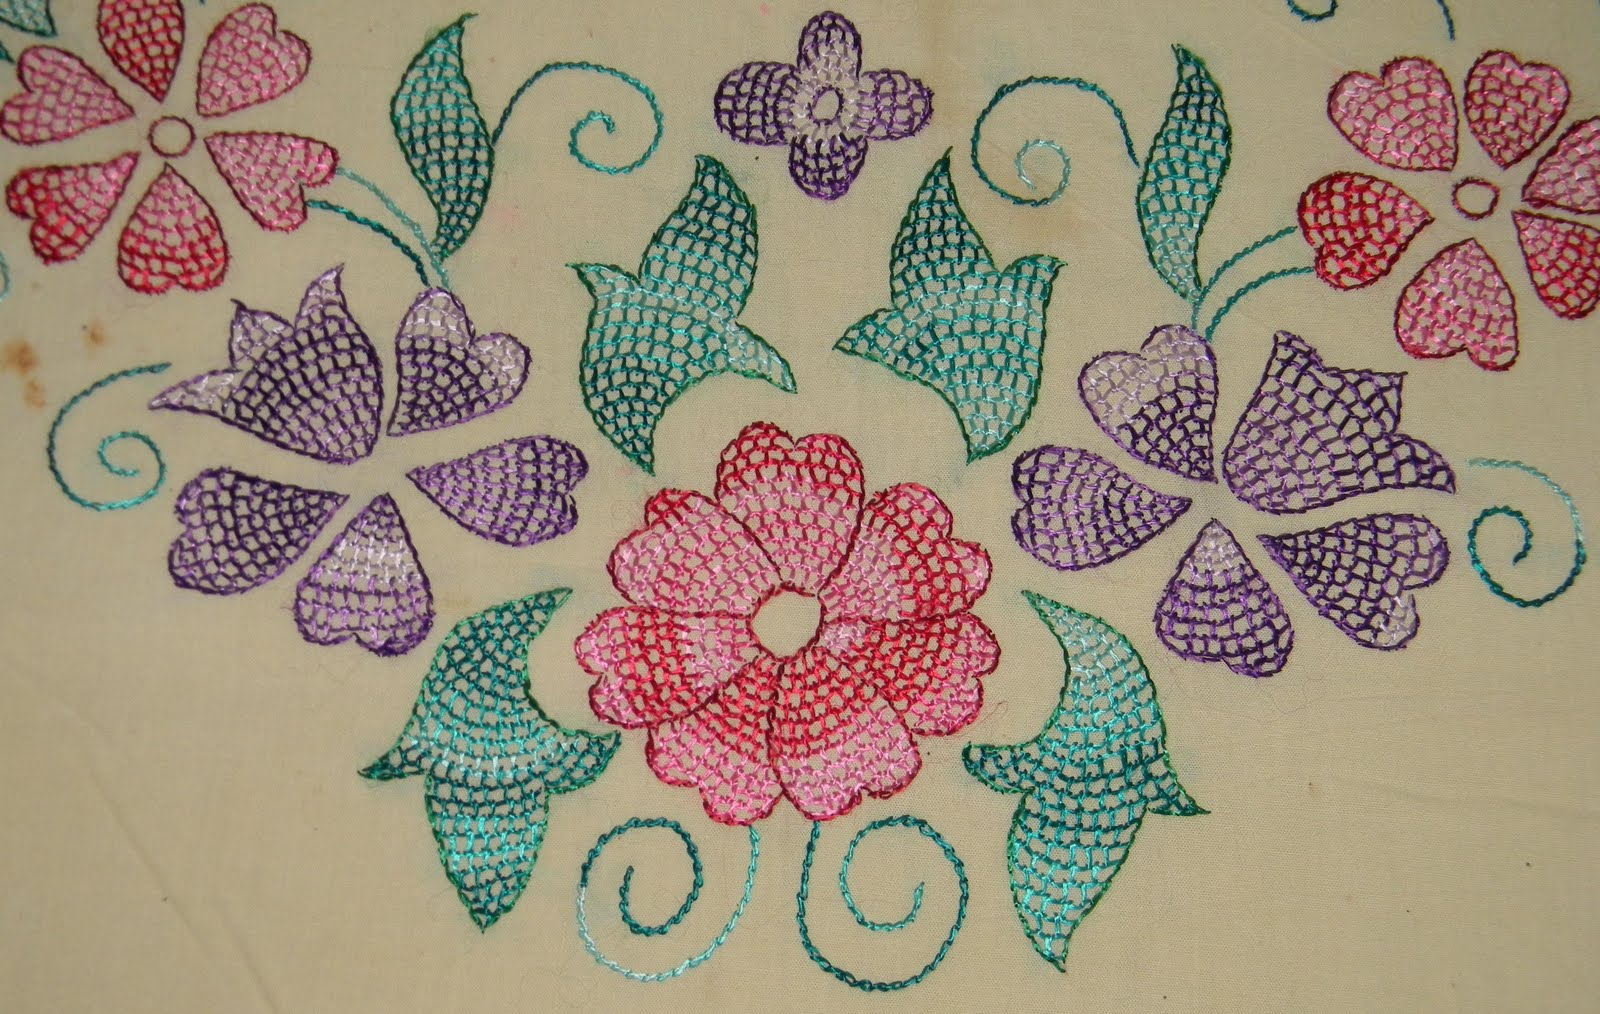 Outline embroidery designs for tablecloth - Hand Stitch Embroidery Patterns Free Embroidery Patterns